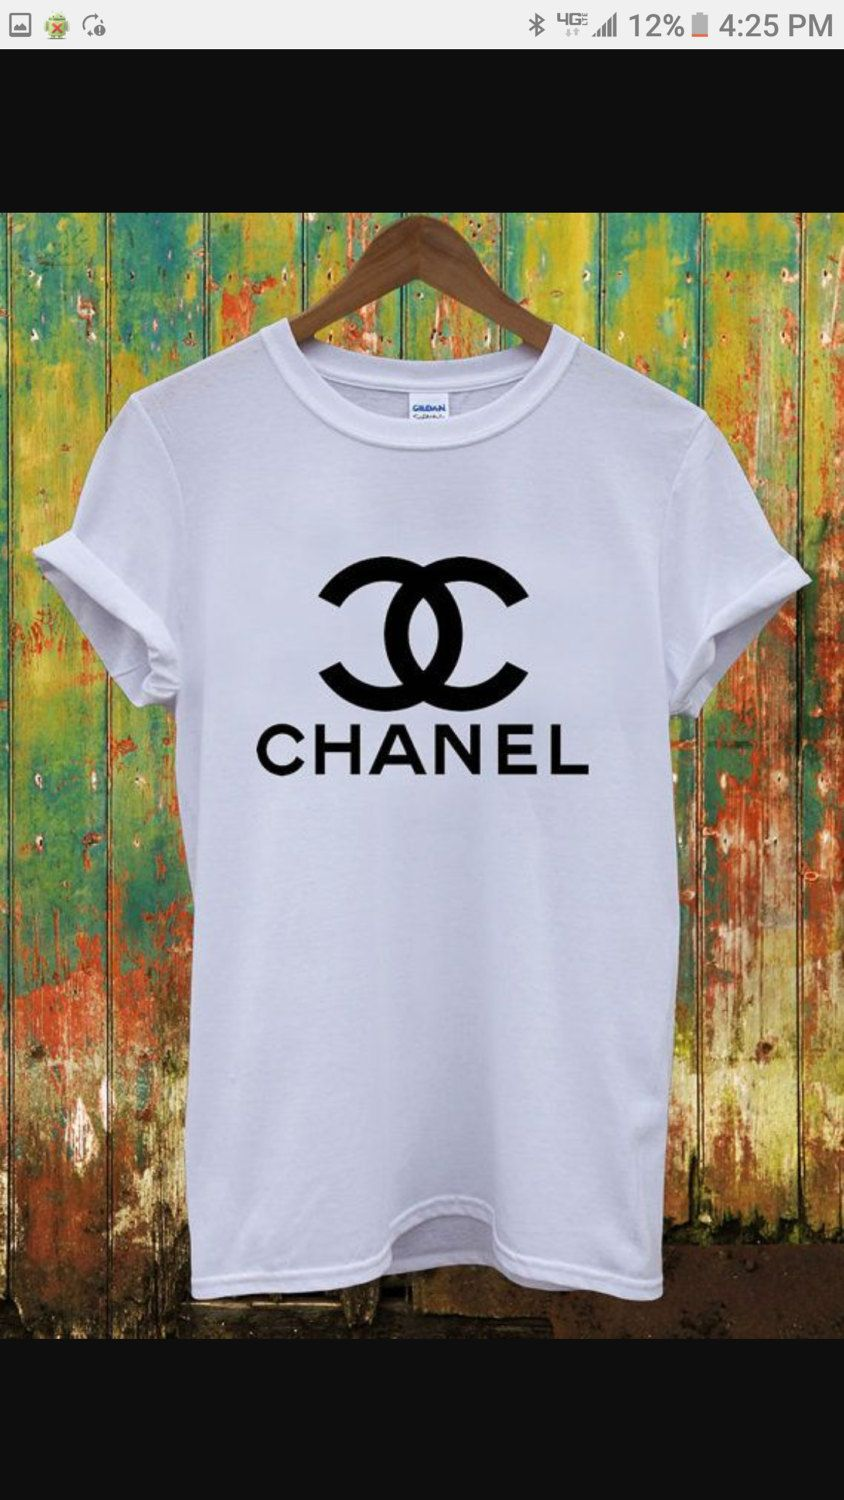 21a723975 Chanel inspired t shirt, white t shirt with black logo, women's graphic tees,  Chanel, sizes small to 4x! Too selling t shirts by DropsofJupiter07 on Etsy